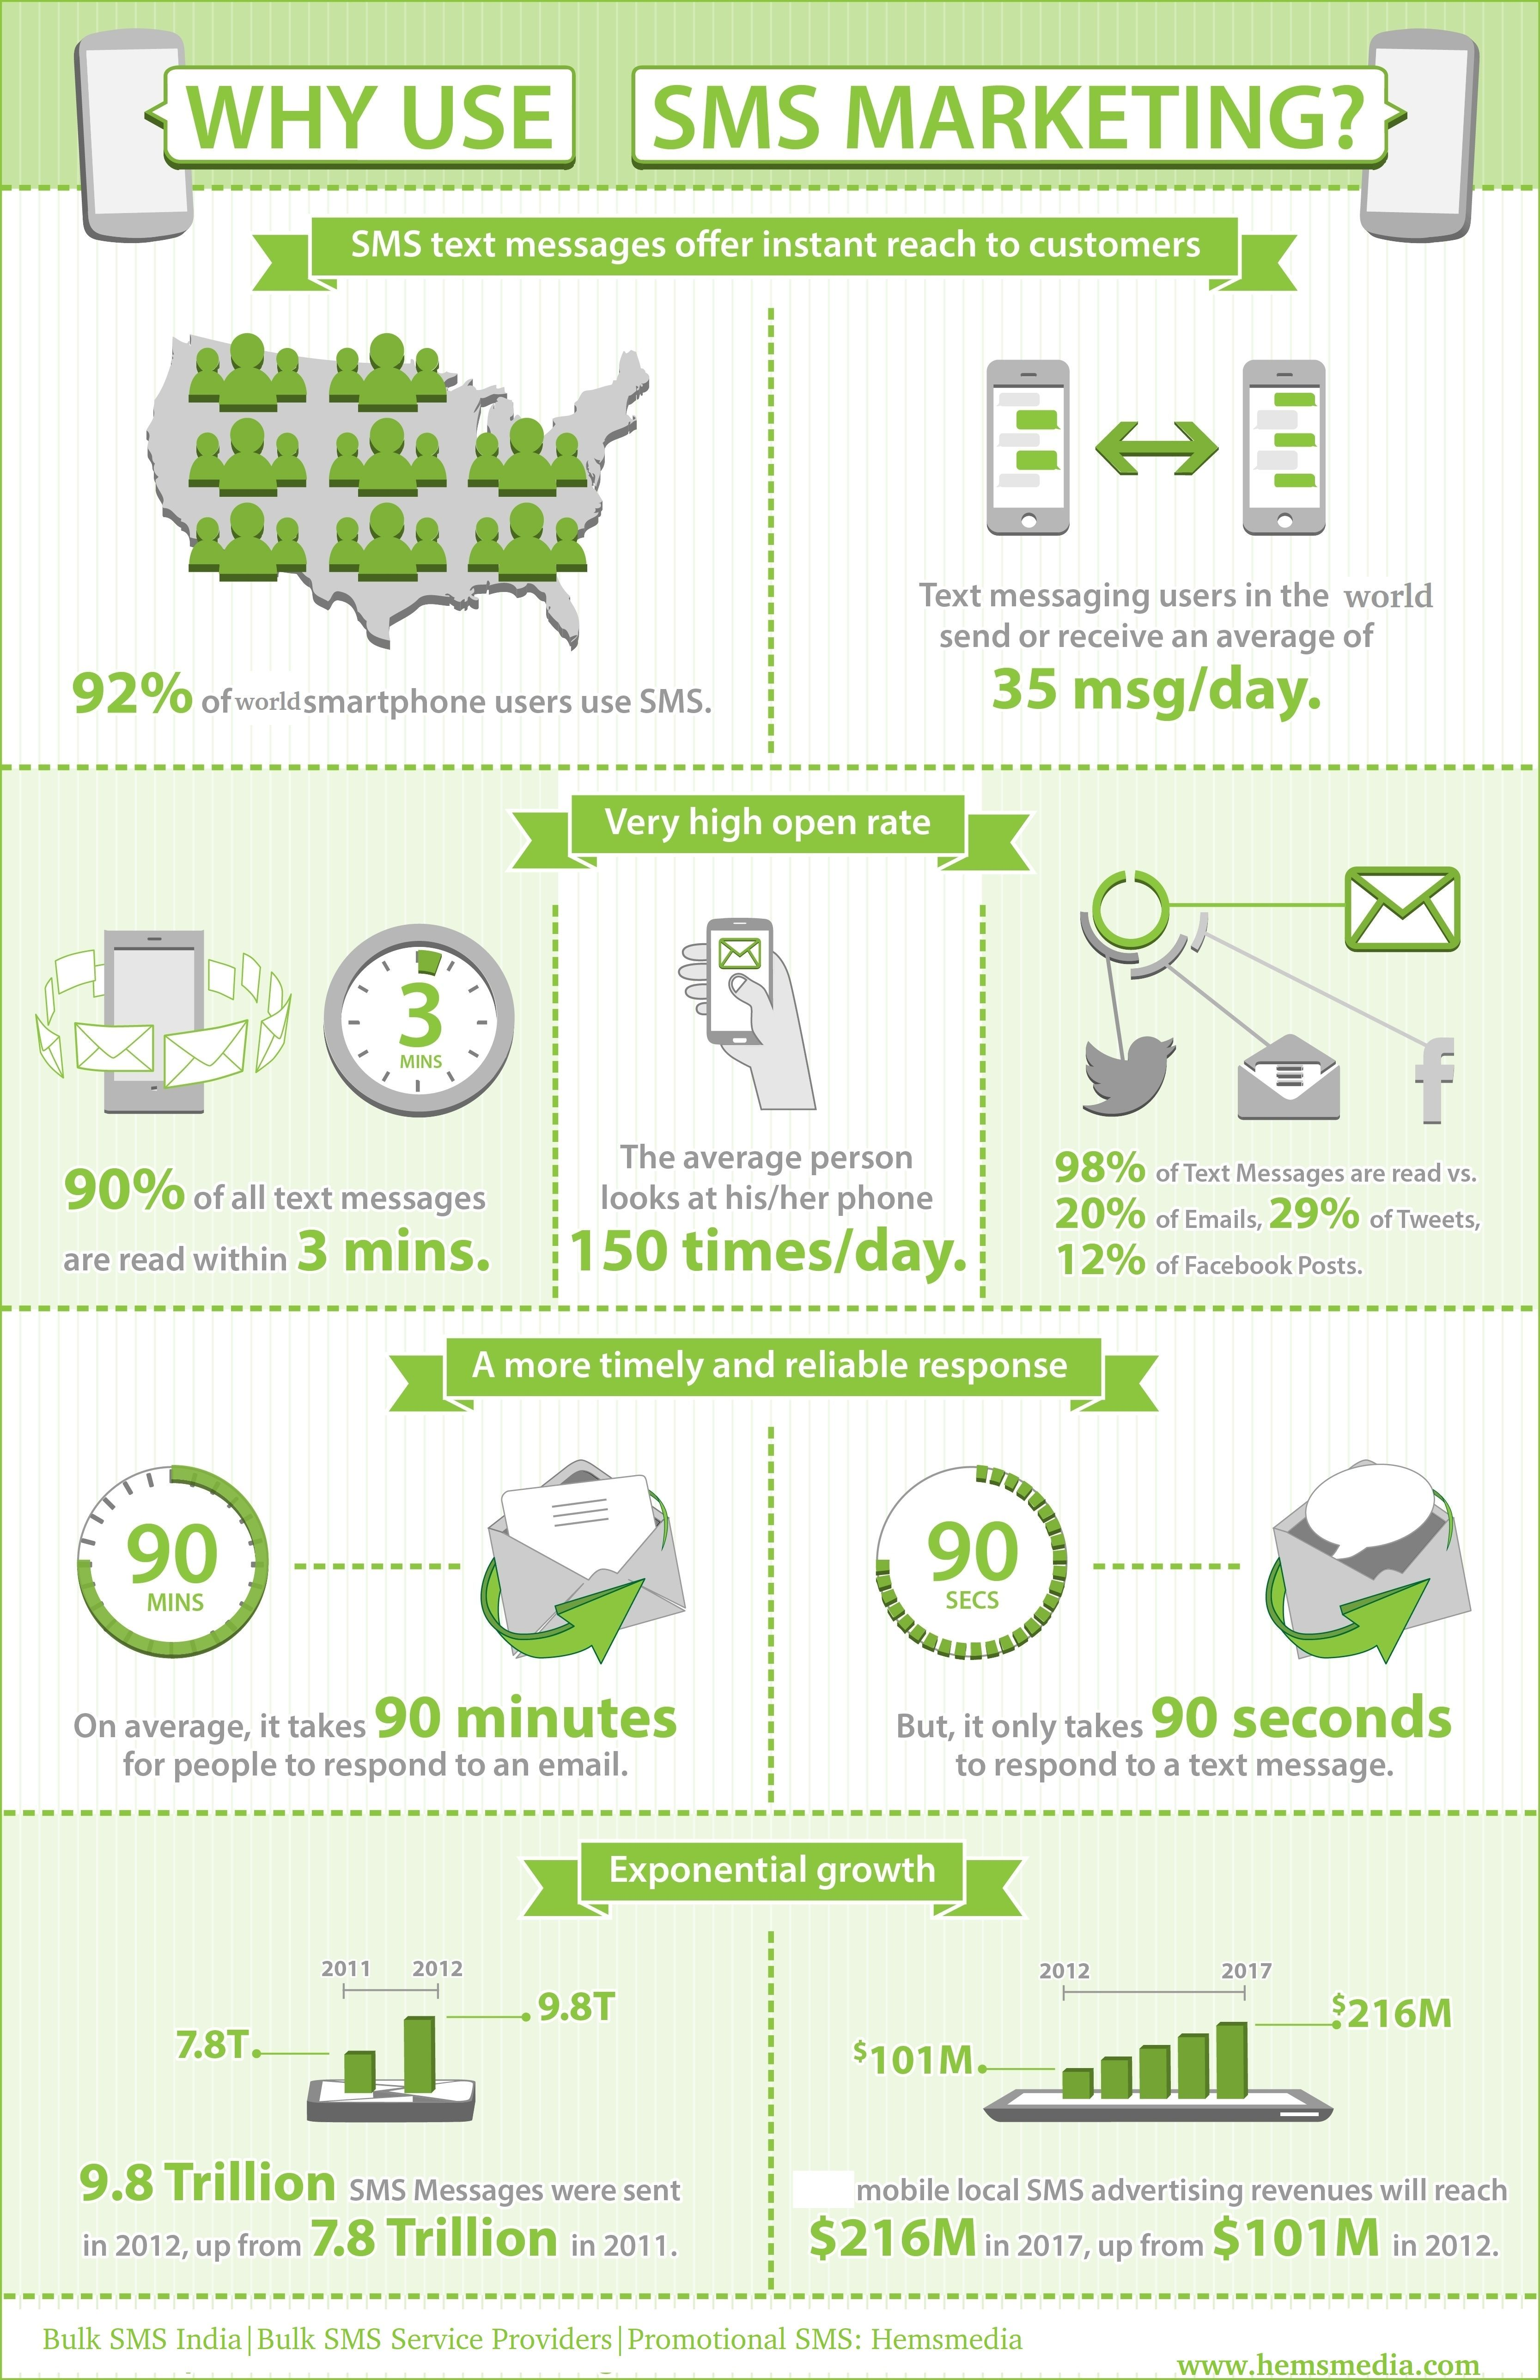 Do You Need Help With Your Mobile Marketing Campaign